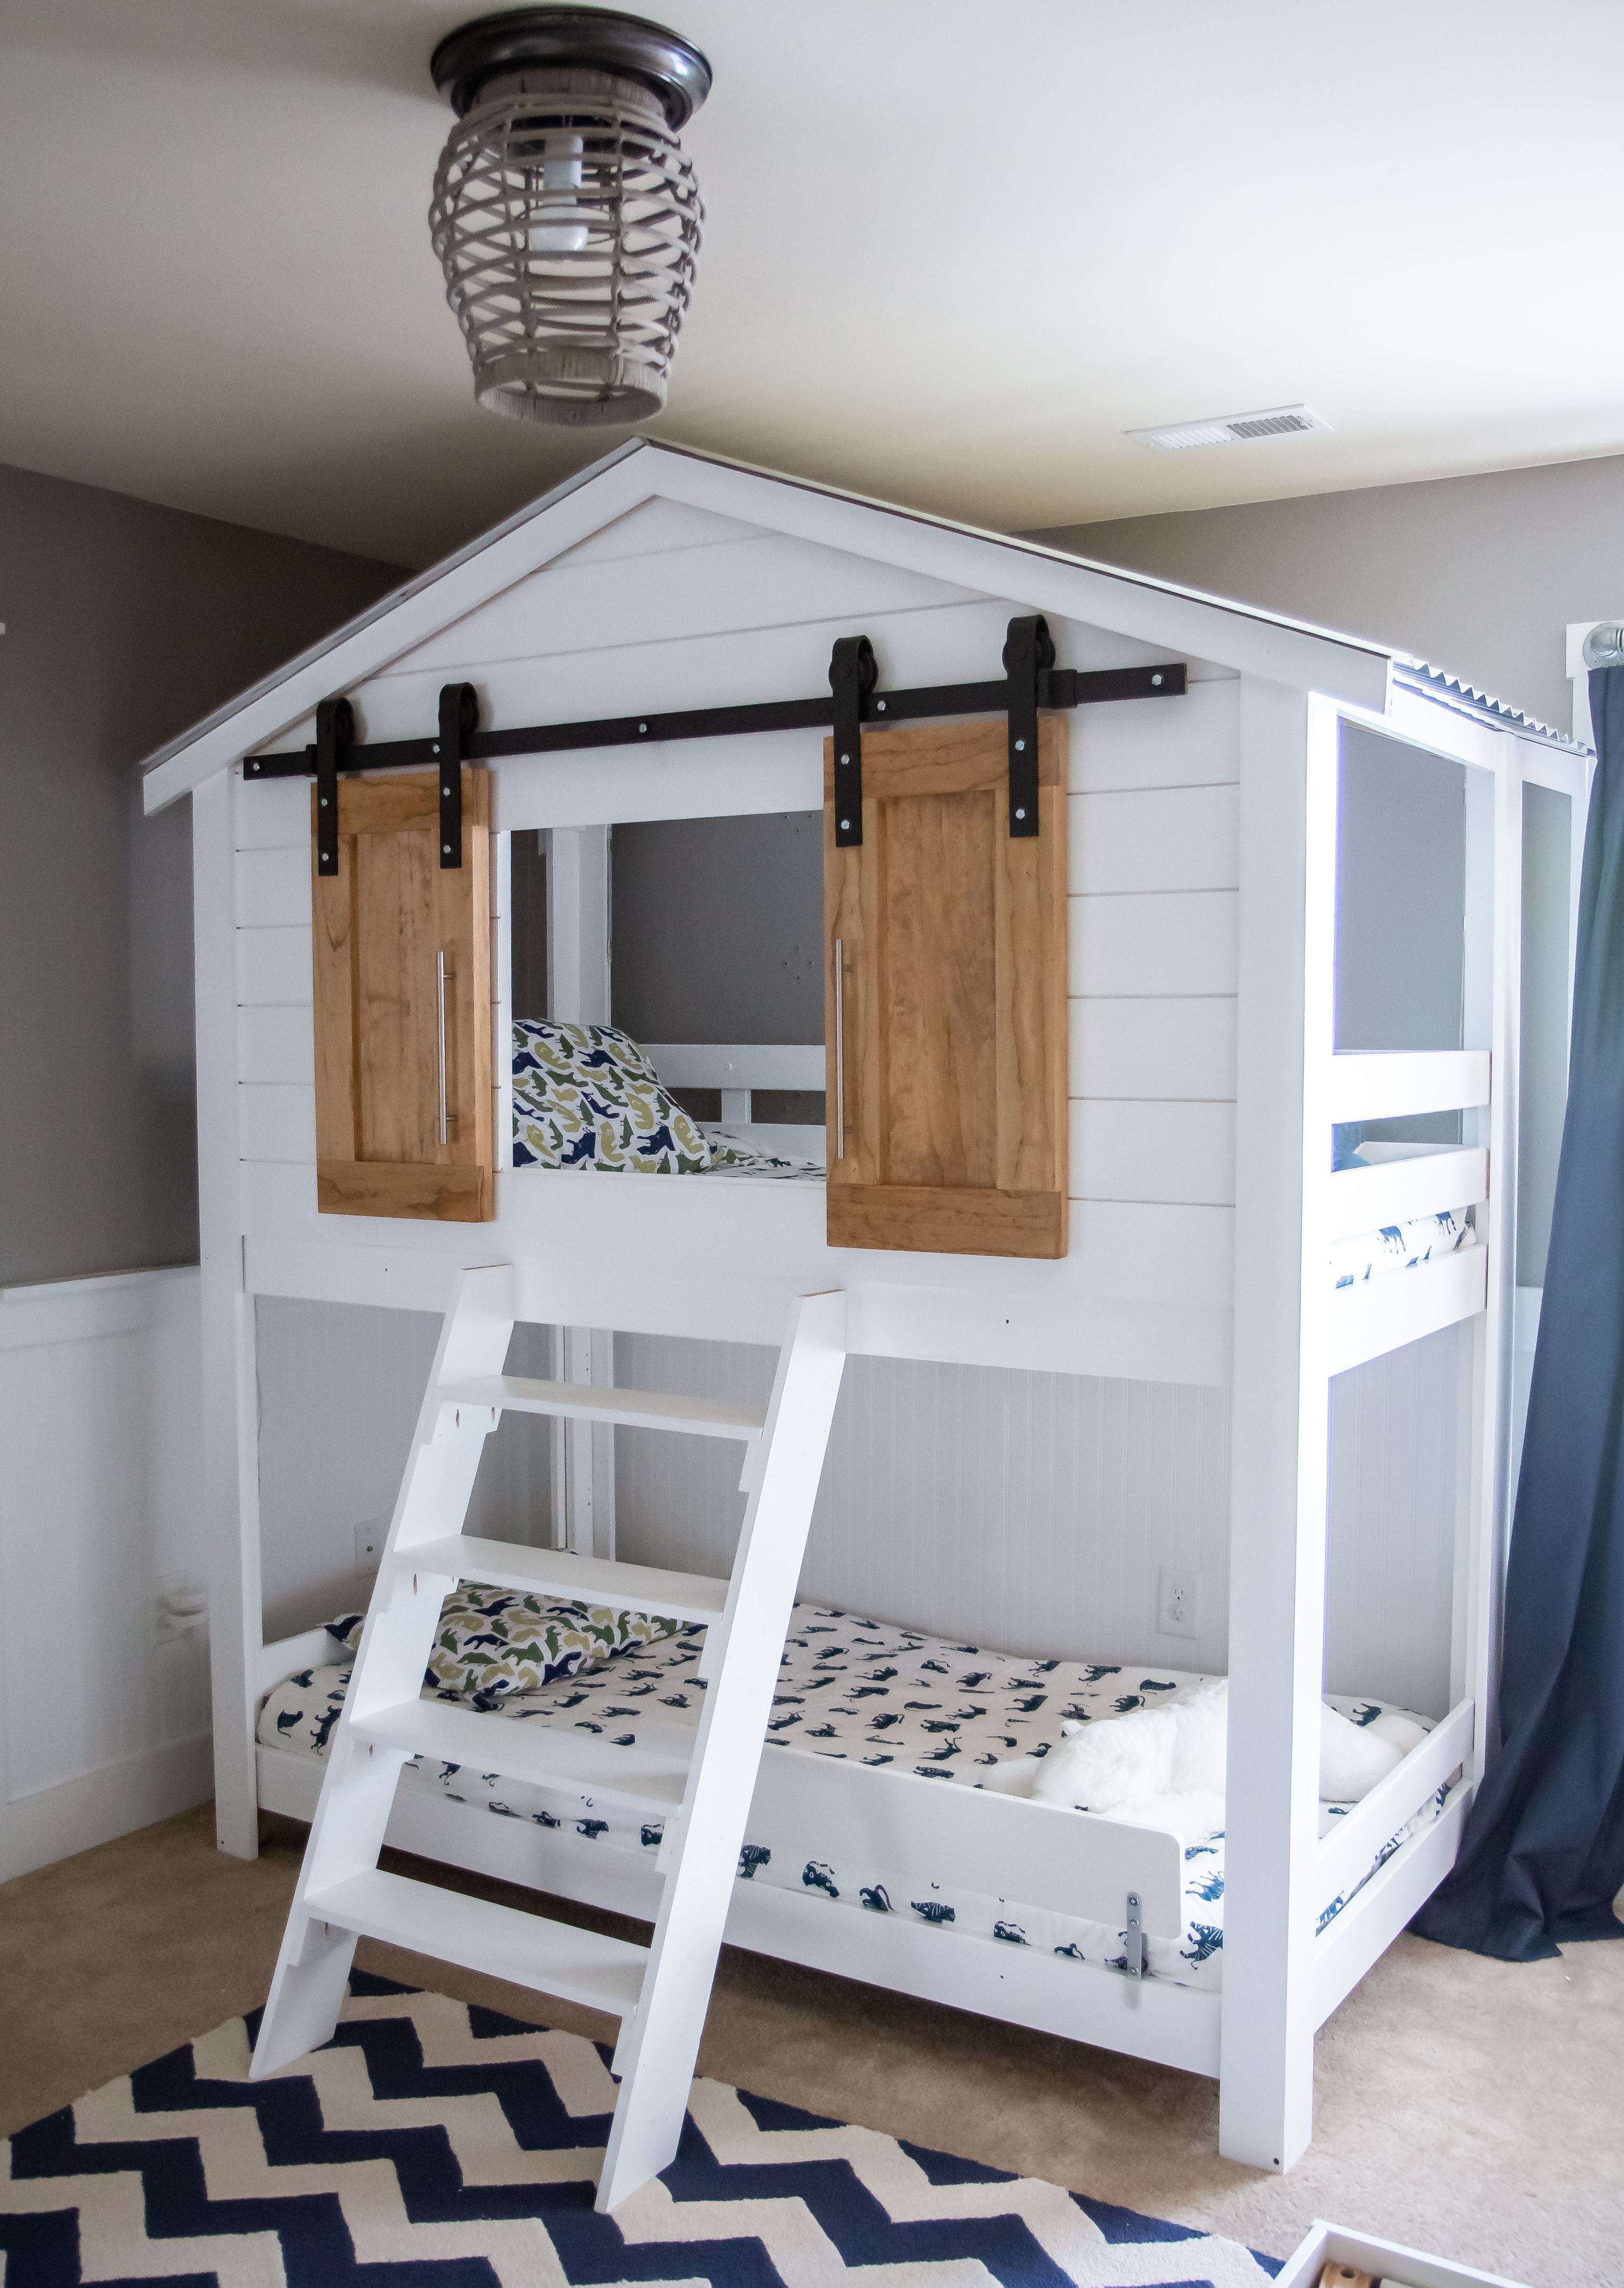 Mydal Ikea Bunk Bed Hack Tree House Bunk Bed House Beds For Kids Ikea Bunk Bed